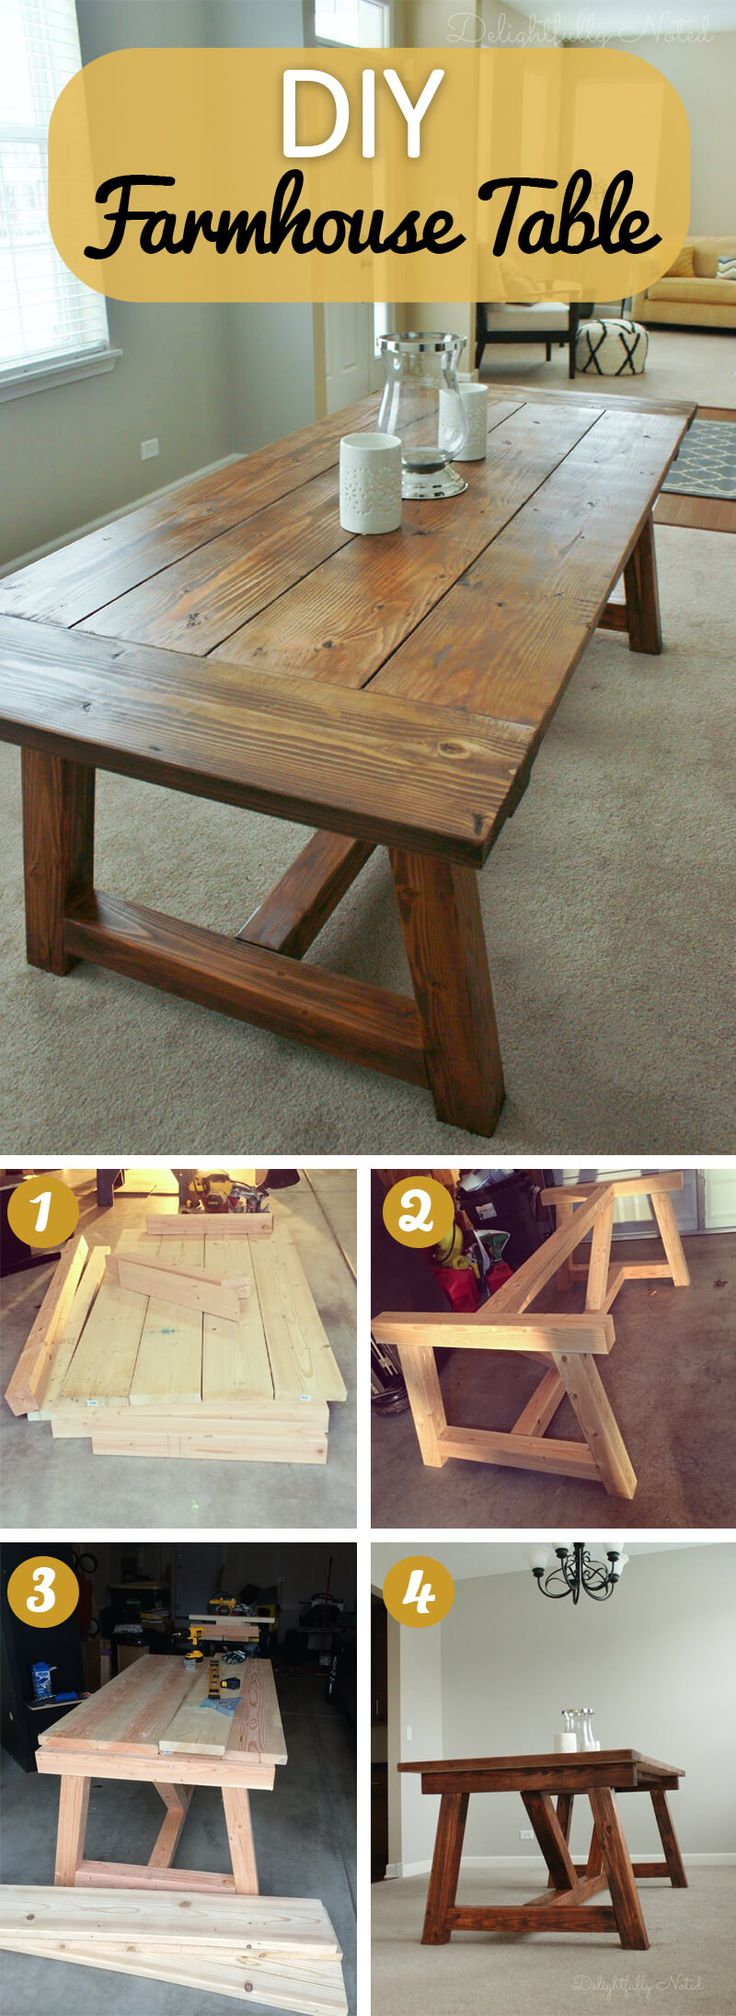 17 rustic DIY farmhouse table ideas to bring land into your home